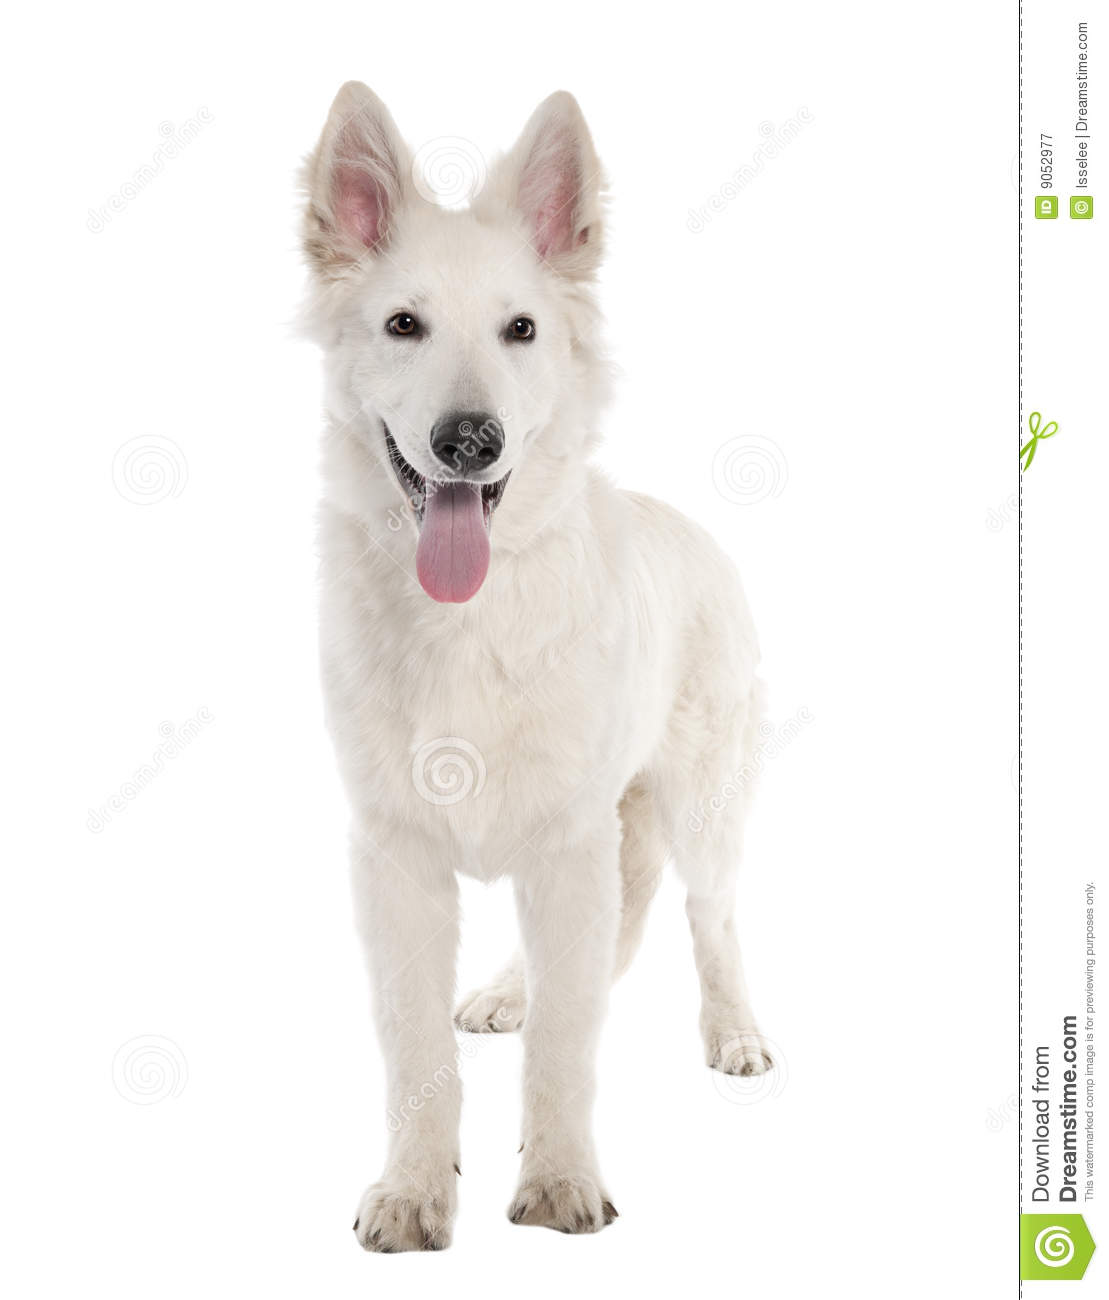 Boy Dog Names For White Dogs